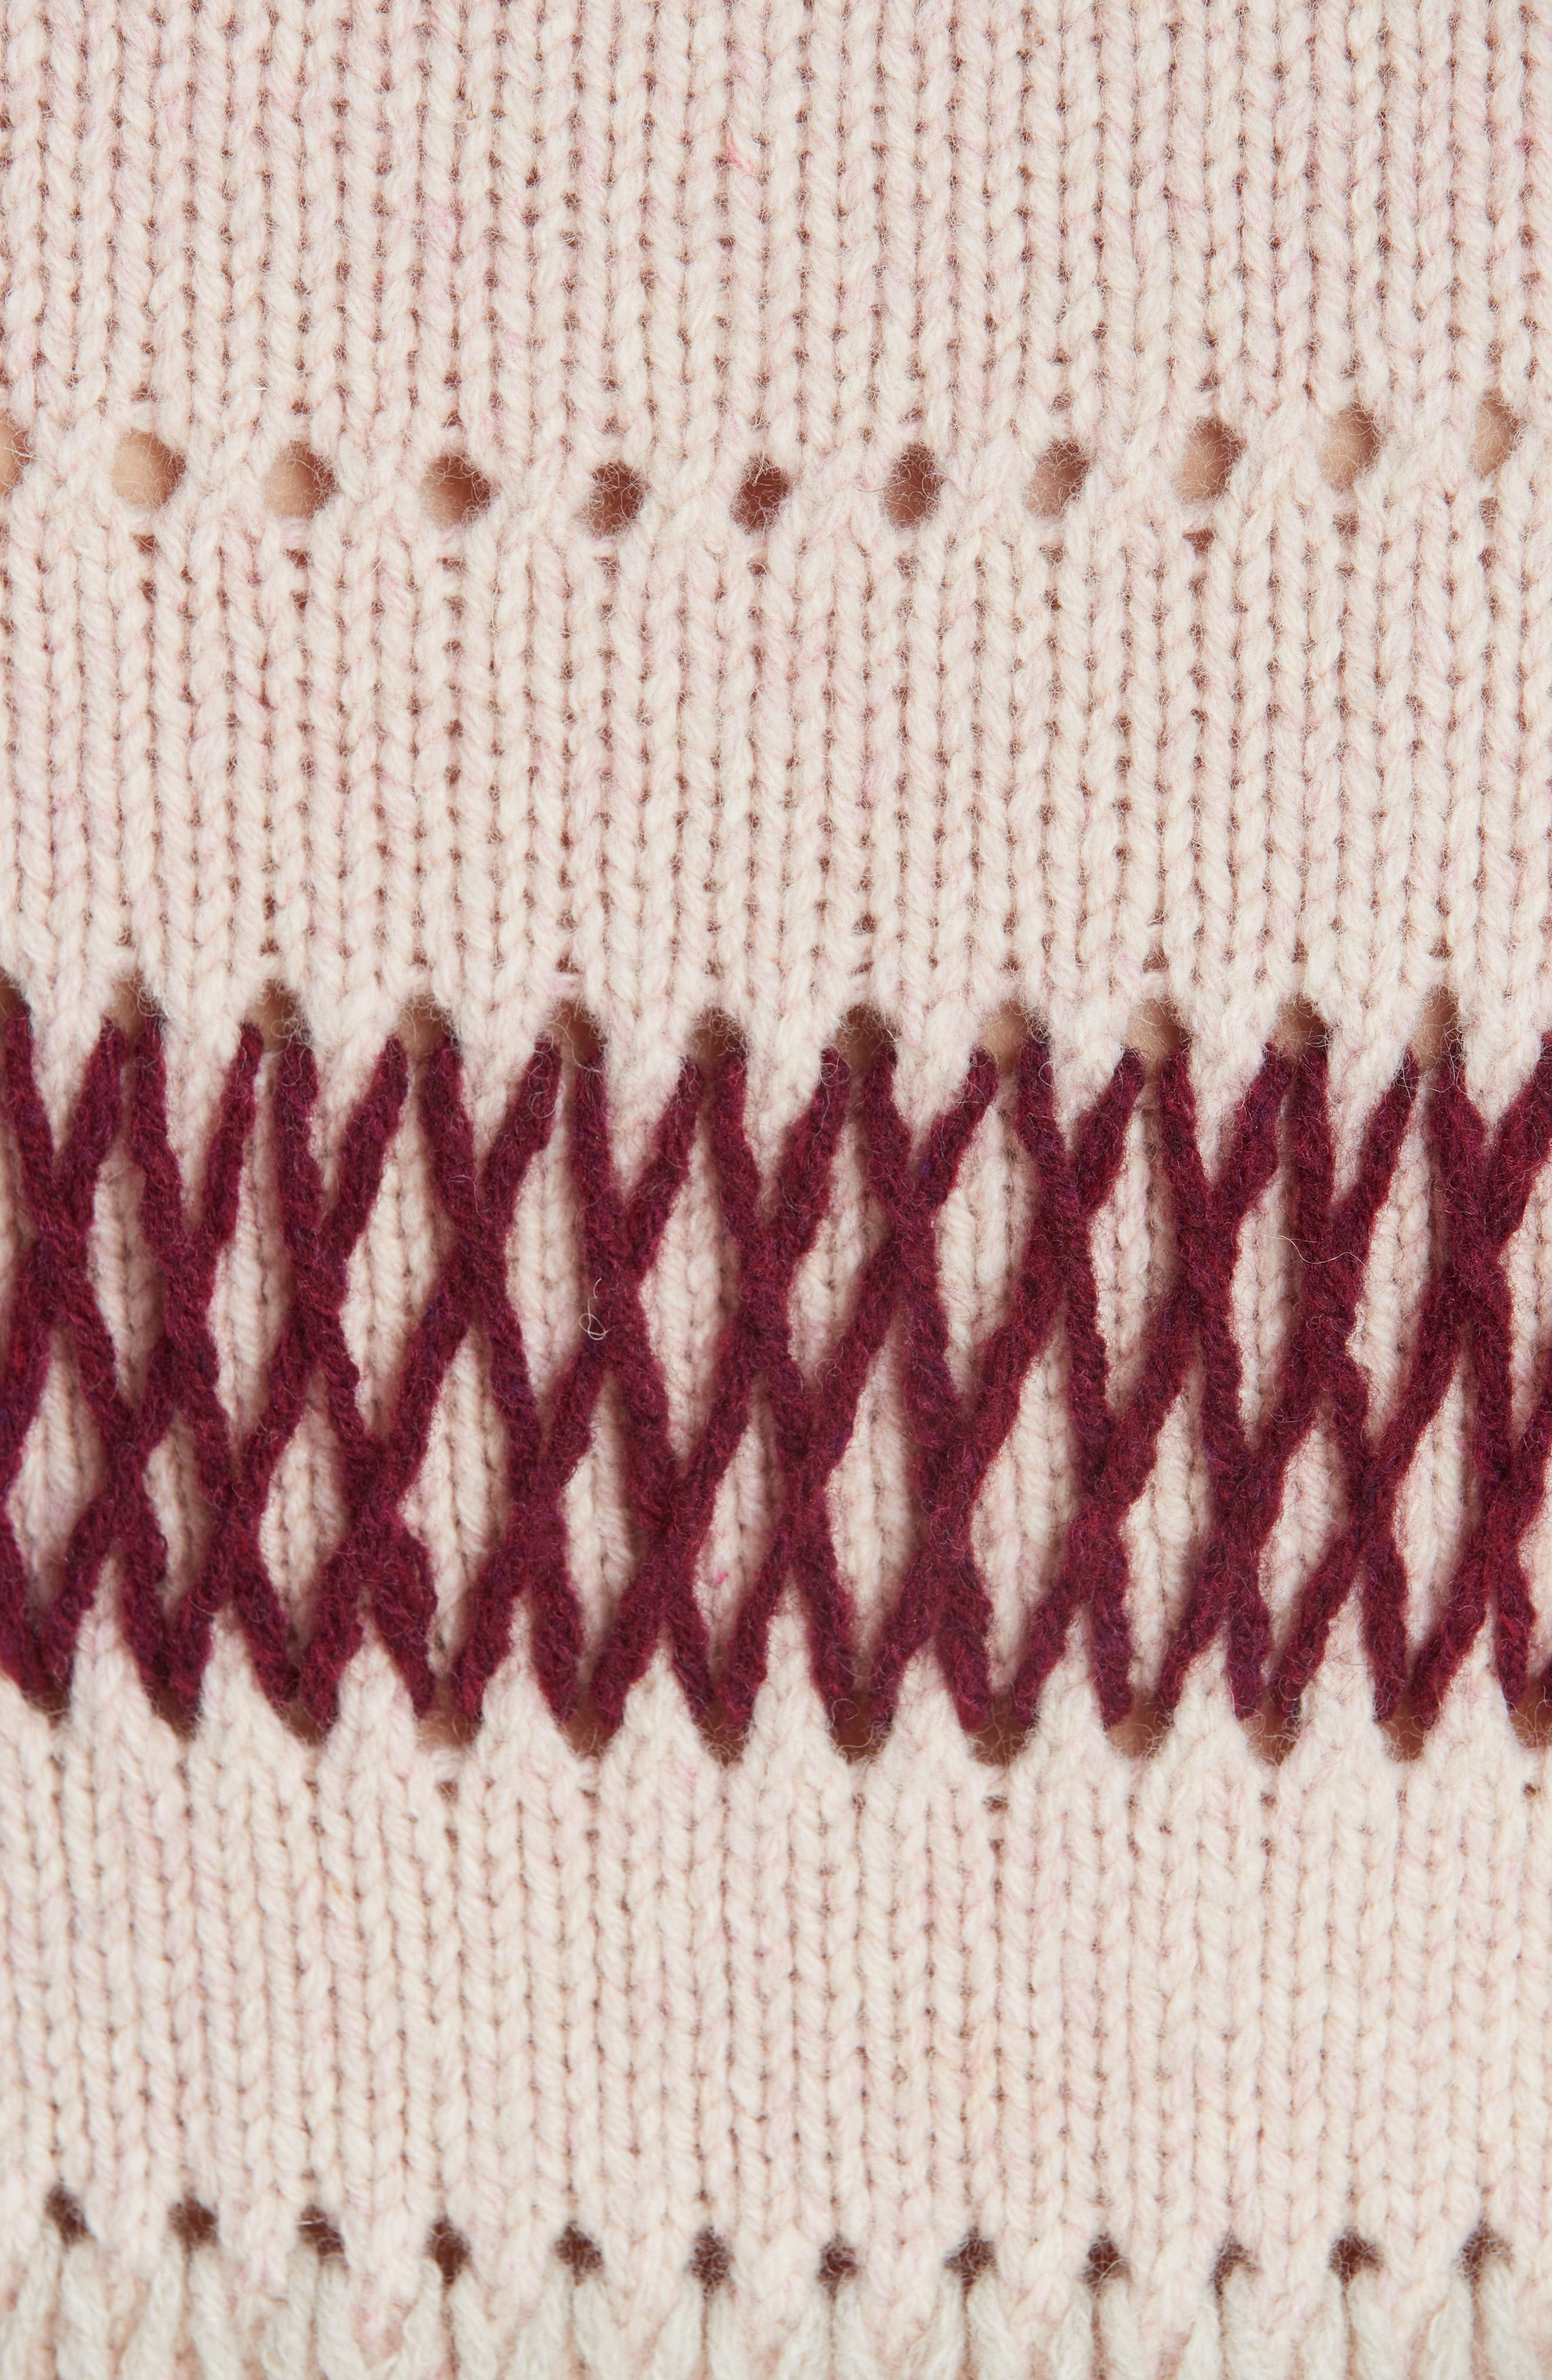 Embroidered Stripe Wool Sweater,                             Alternate thumbnail 6, color,                             PALE PINK BURGUNDY